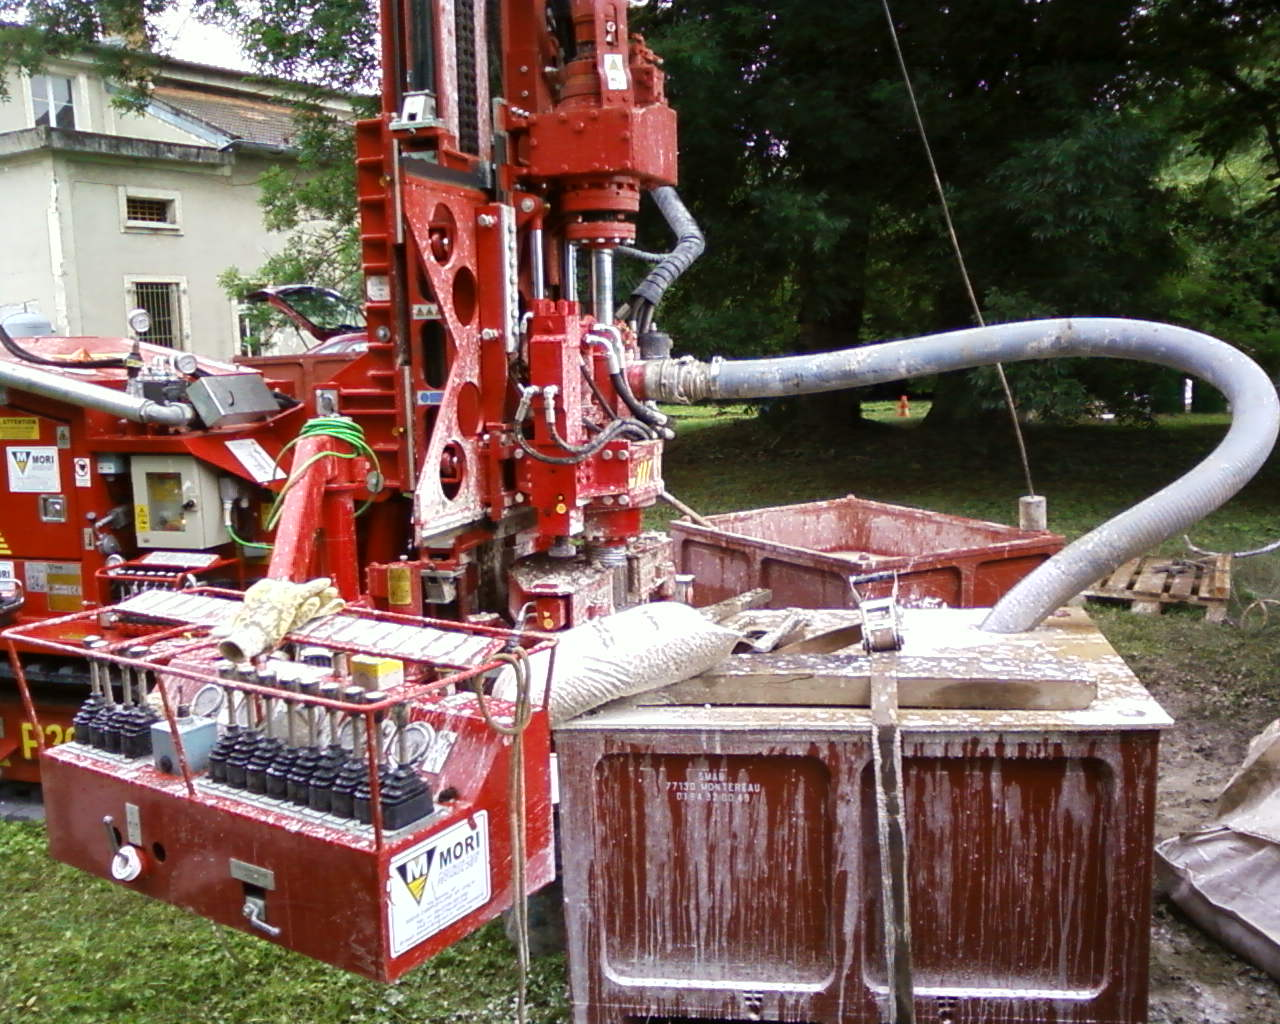 Drilling machine with 2 heads. The first turns right to drive the tool. The second is a hollow shaft head which drives the casing and turns to the left. A collecting device is placed between the two heads to collect the cuttings and to not pollute the environment of the drilling site. A high-frequency vibrating hammer is placed on the side of the swing out carriage to take undisturbed samples in the center of the borehole.